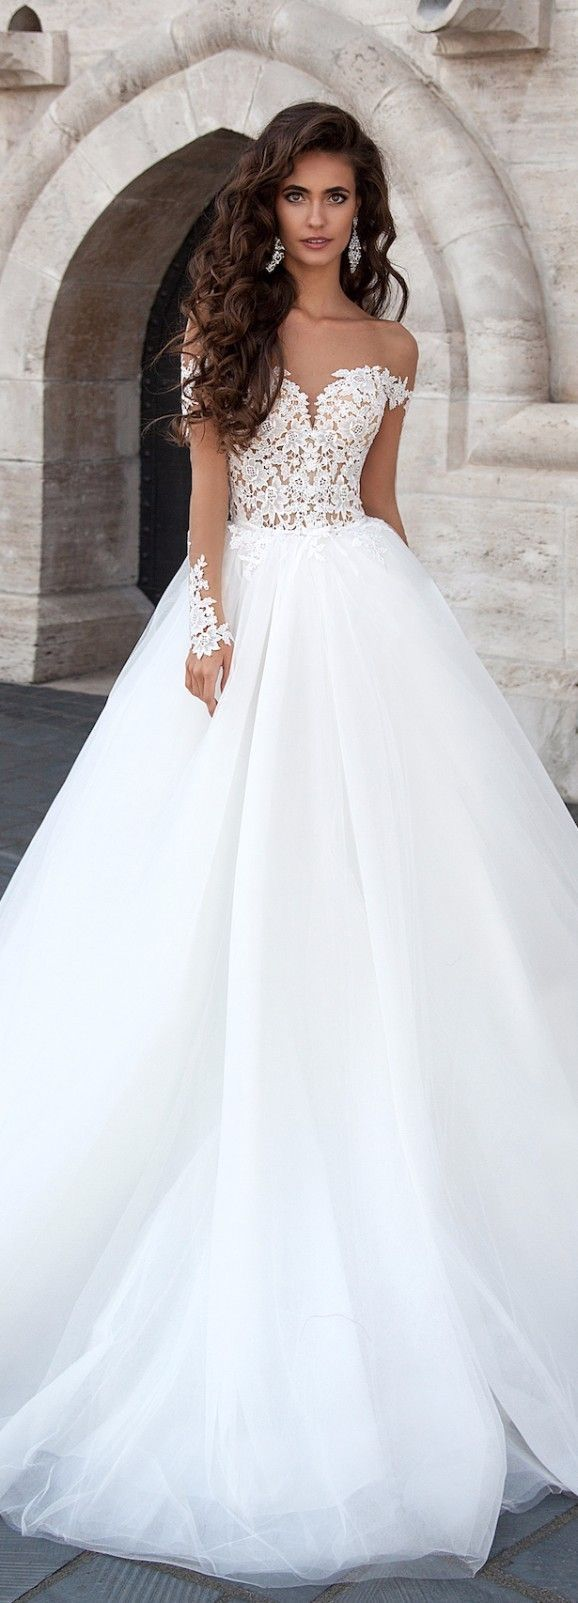 Pin by juliet sither on wedding dresses pinterest pinterest